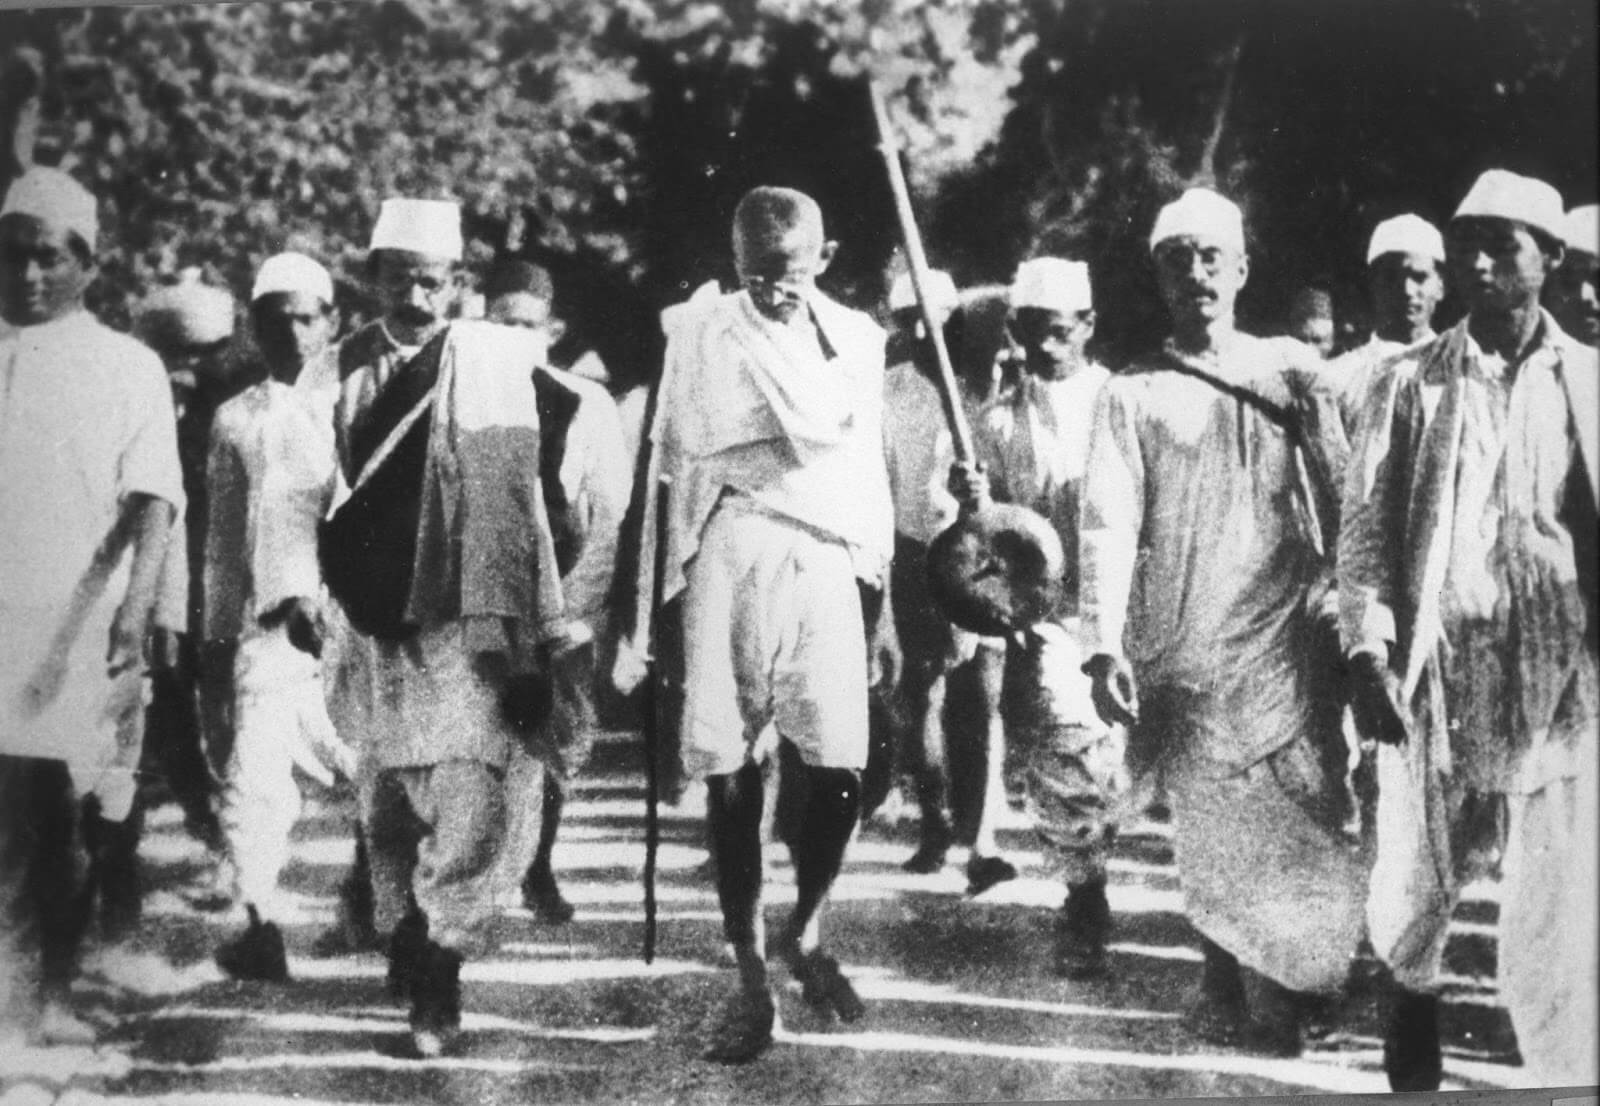 Gandhi leading followers on the Salt March in the 1920s.